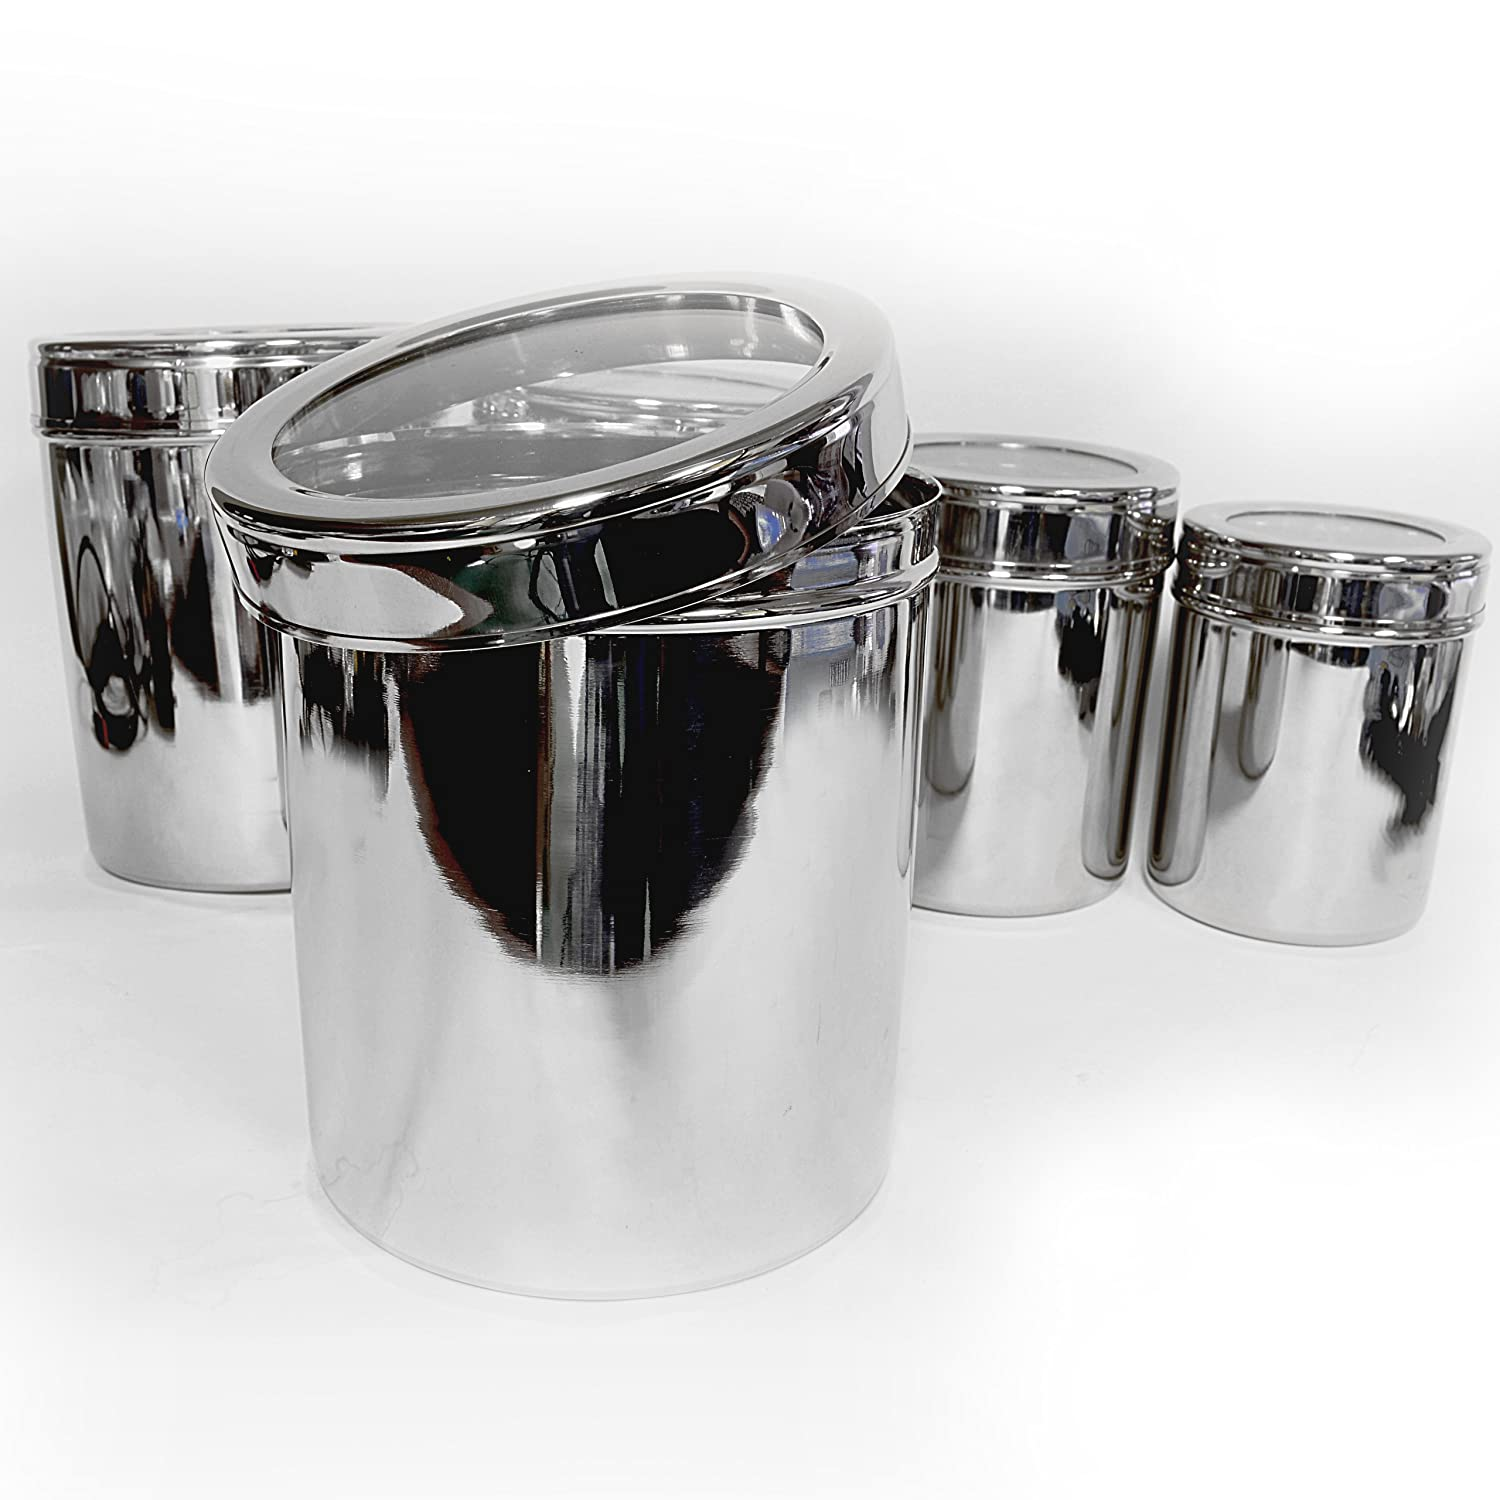 matbah stainless steel 5 piece canister set with clear lid new free shipping ebay. Black Bedroom Furniture Sets. Home Design Ideas